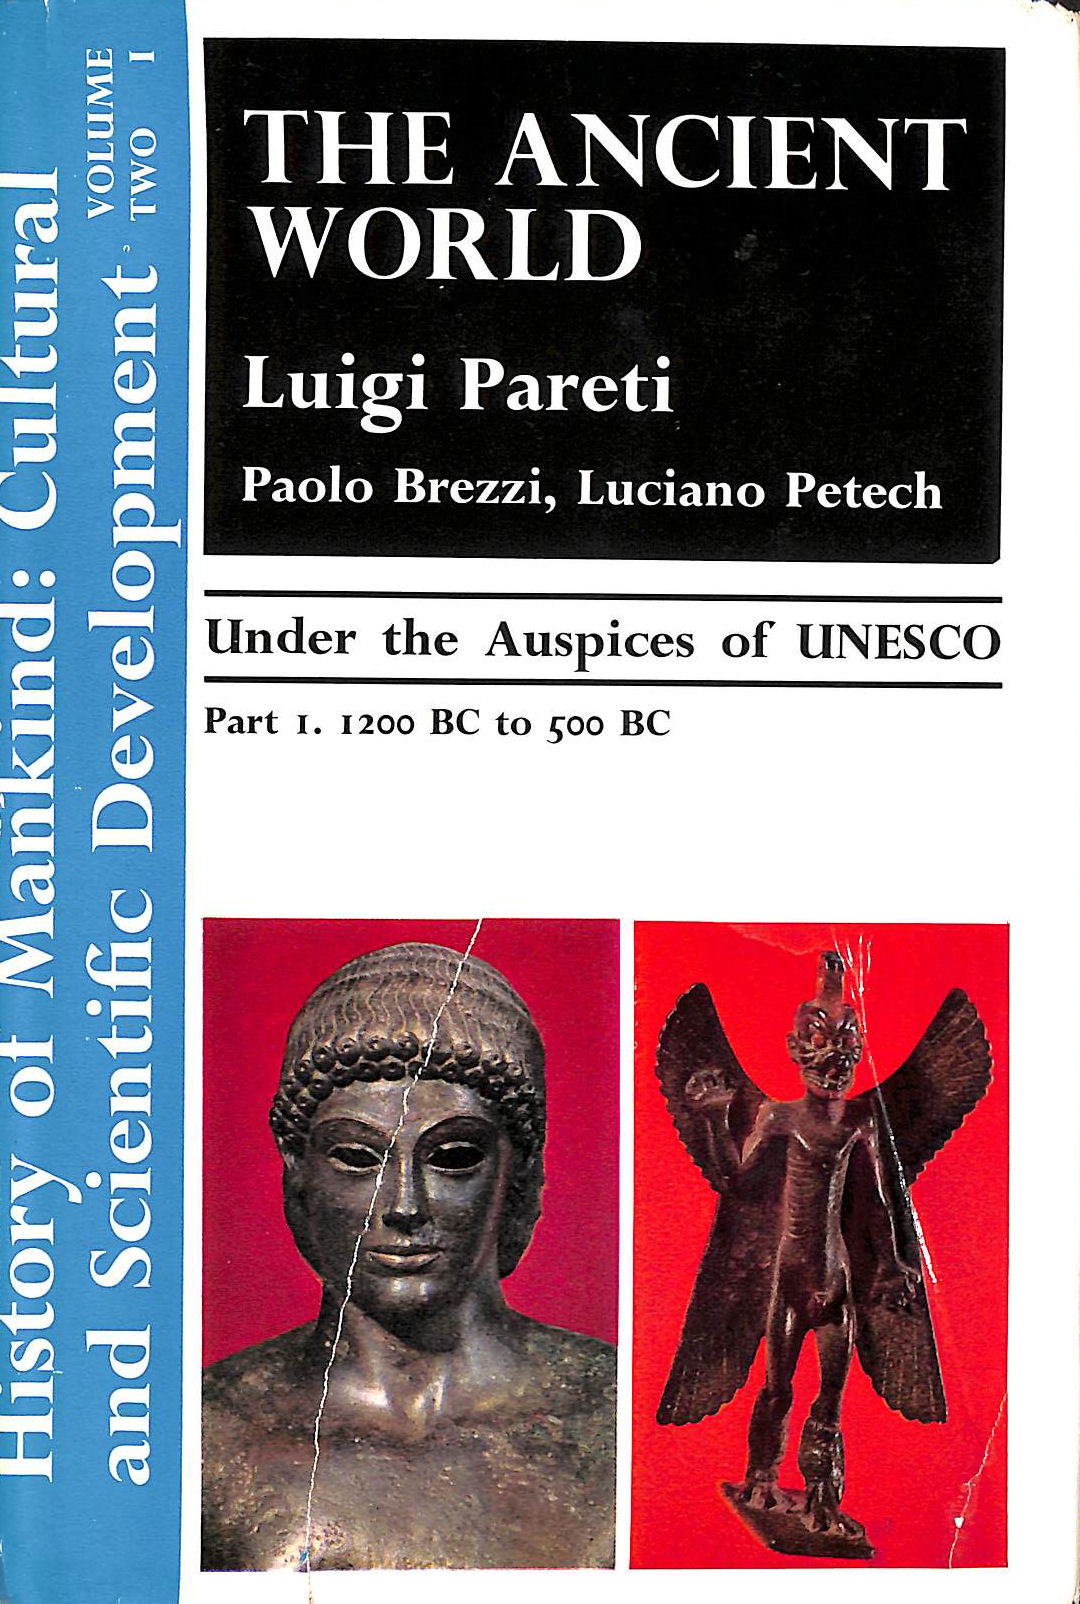 Image for Cultural and Scientific Development Series Volume Two Part I The Ancient World 1200 BC to 500BC Under the Auspices of UNESCO (History of Mankind: Cultural and Scientific Development Series)